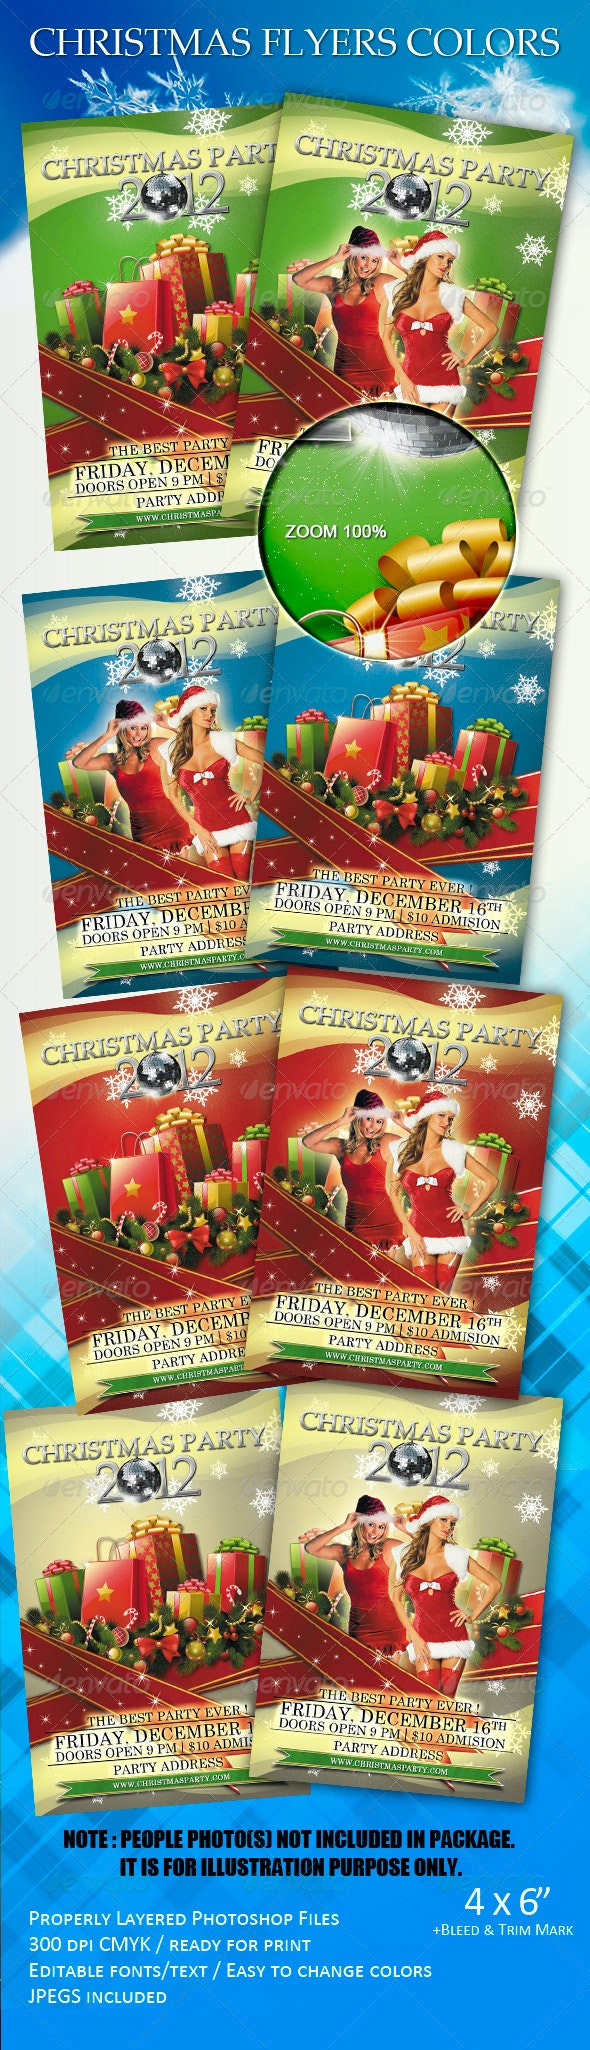 Christmas Flyers Colors - Clubs & Parties Events